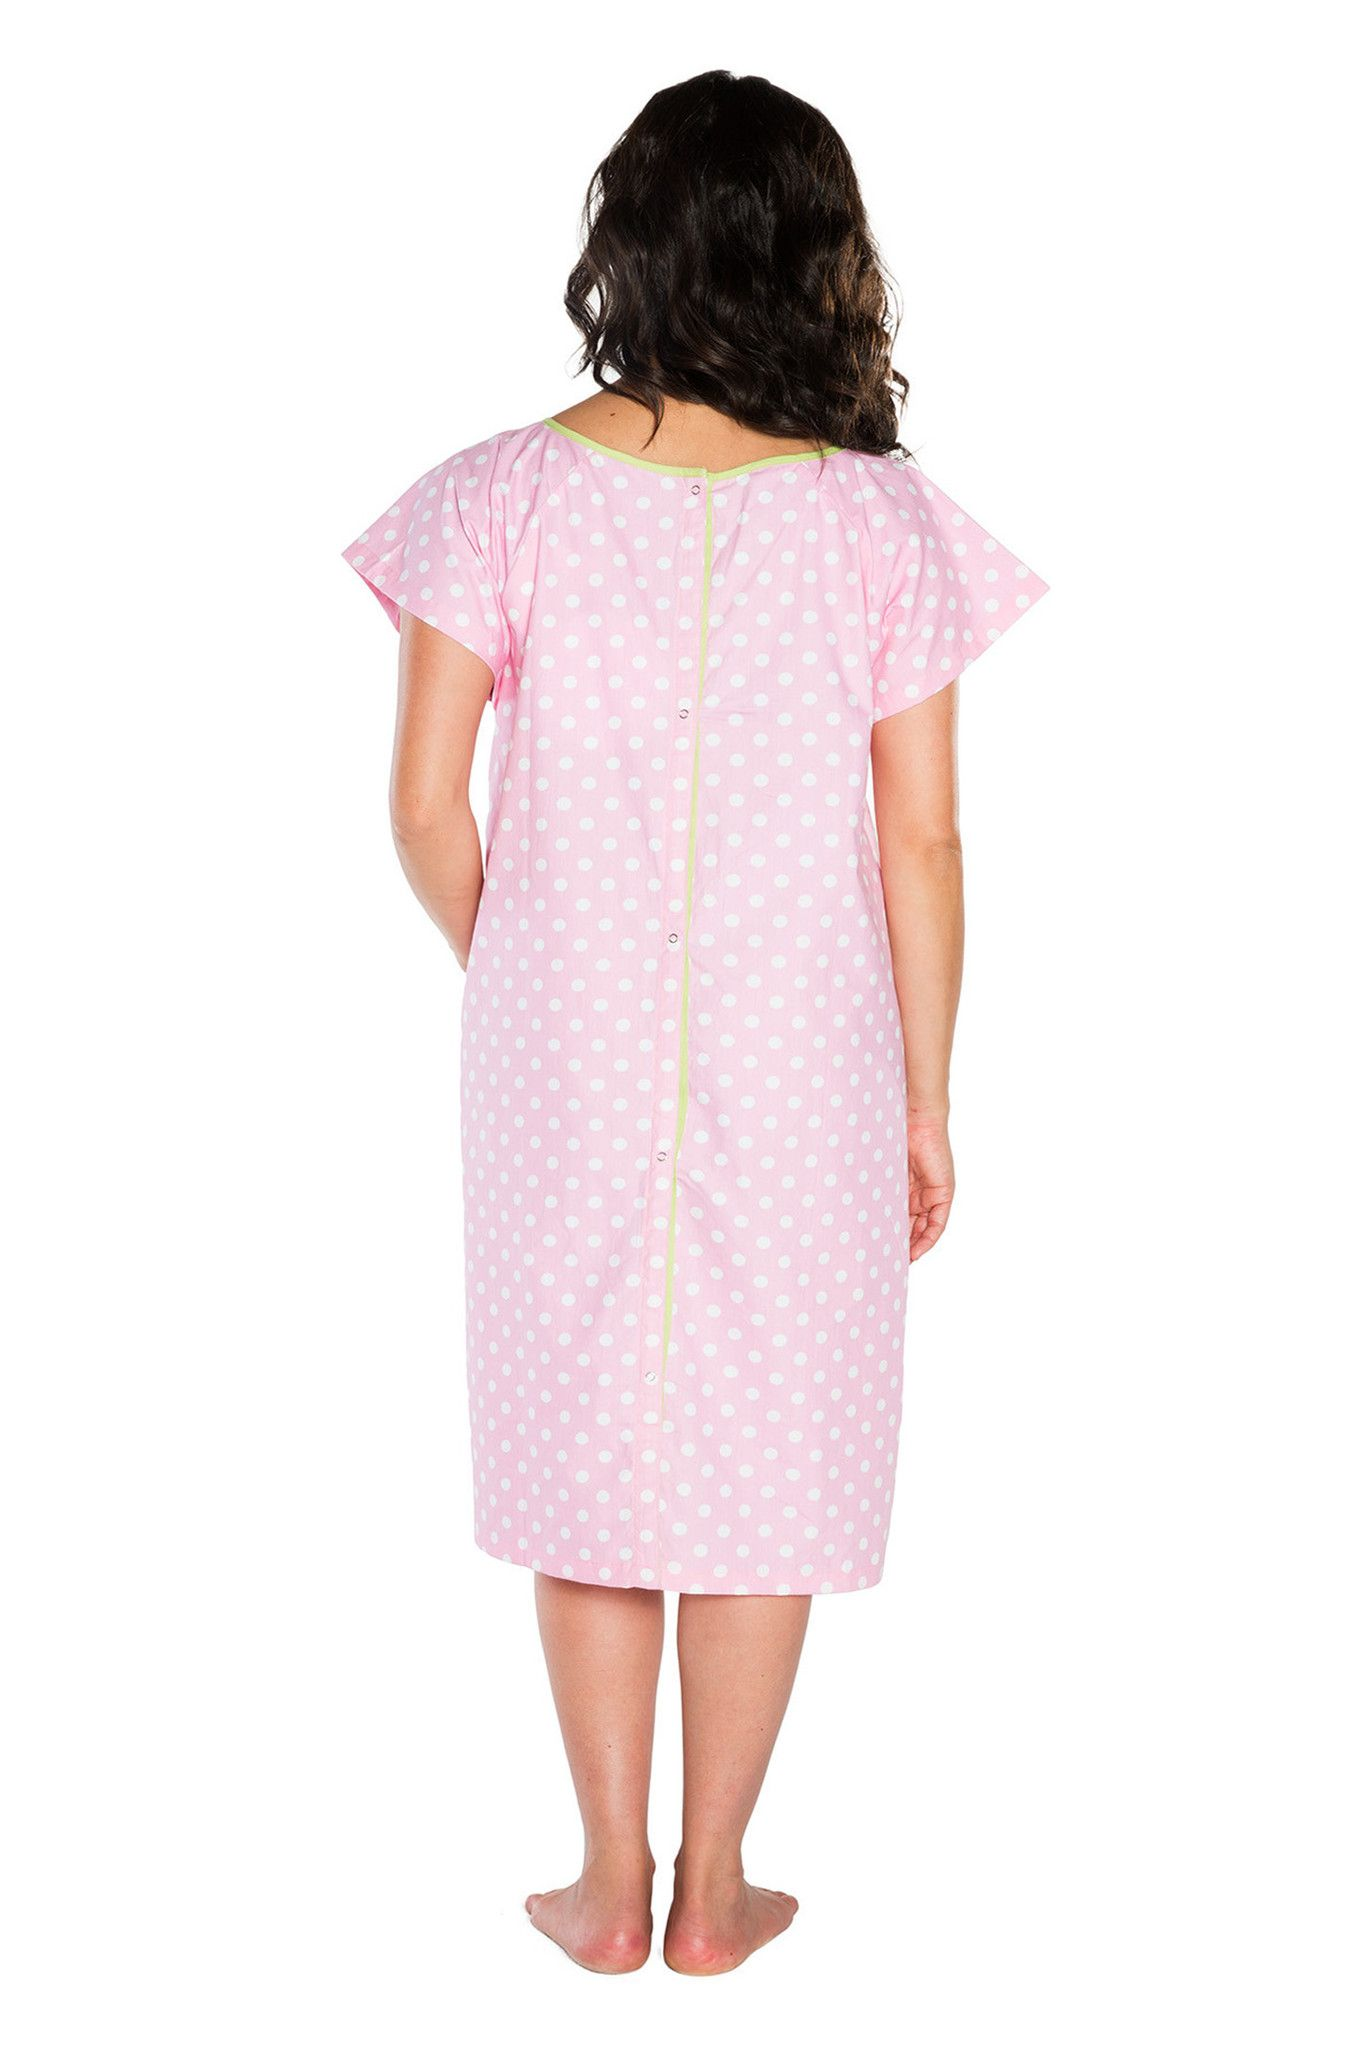 Labor And Delivery Hospital Gown Molly Delivery Day Pinterest